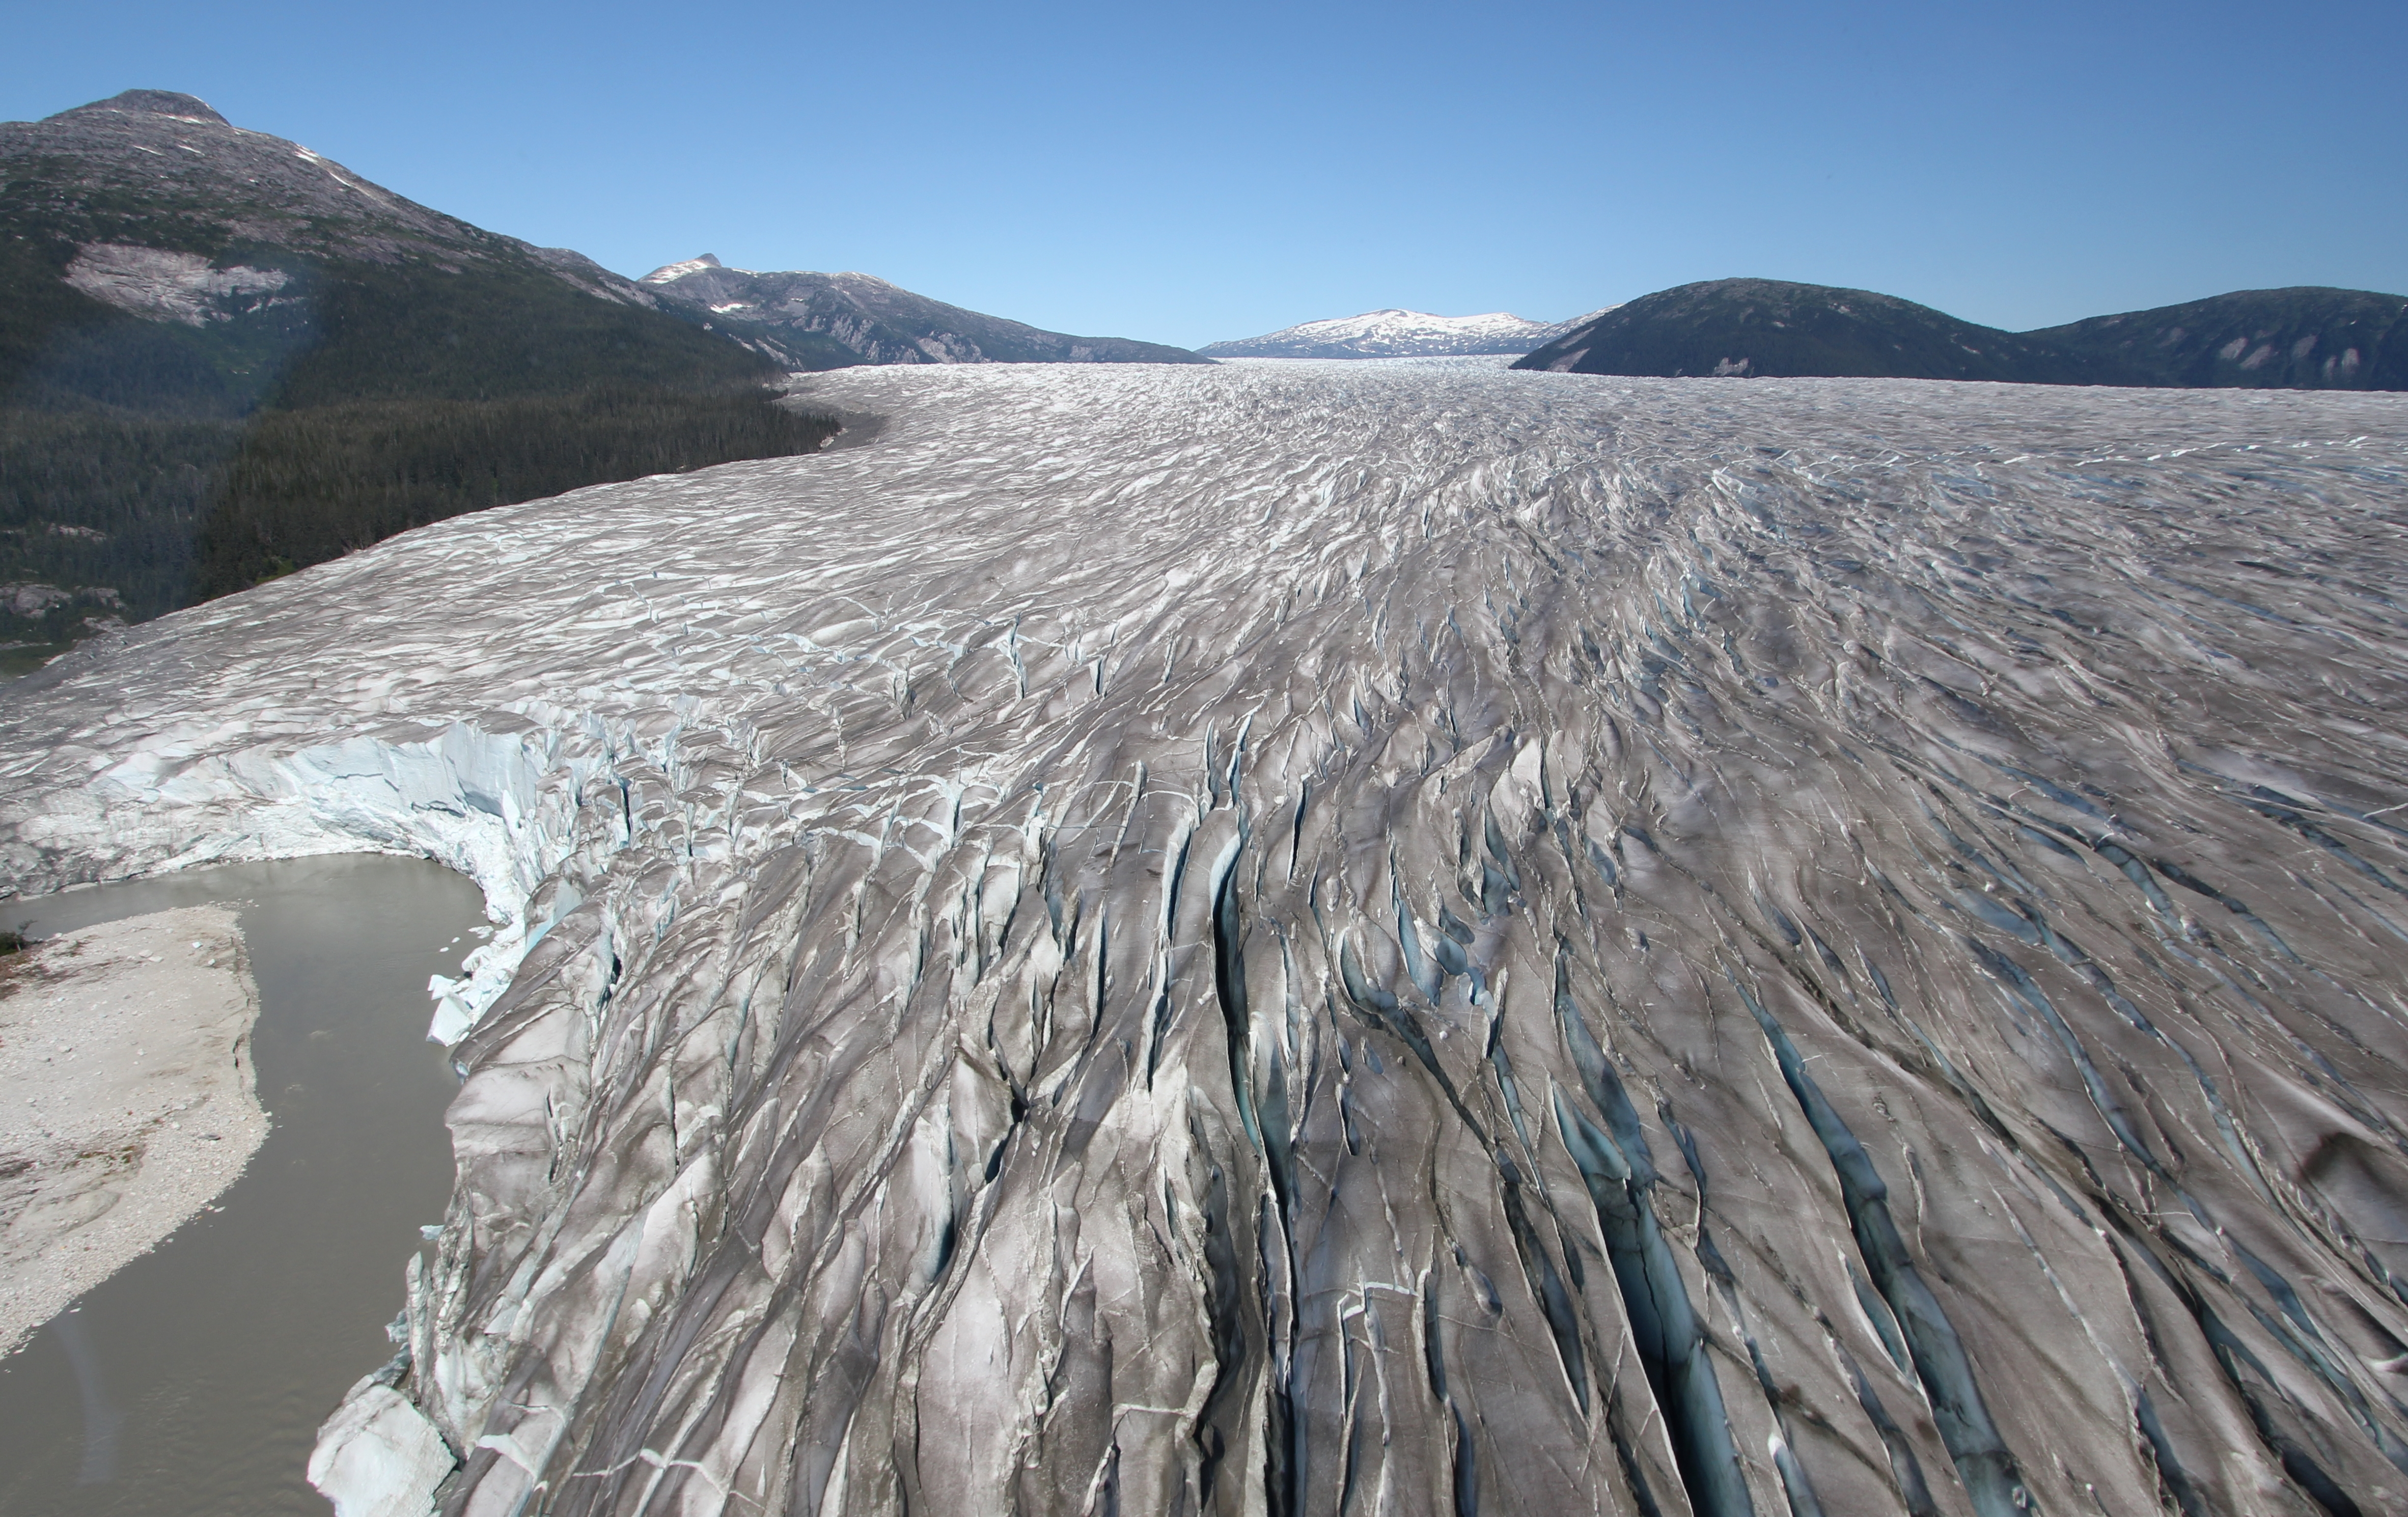 The view up Taku Glacier from the terminus. To the left is Norris Mountain (4,125 ft/1,257m), and to the right the Brassiere Hills. Click on the image to enlarge it and get a better idea of just how striking the crevasses are from above.